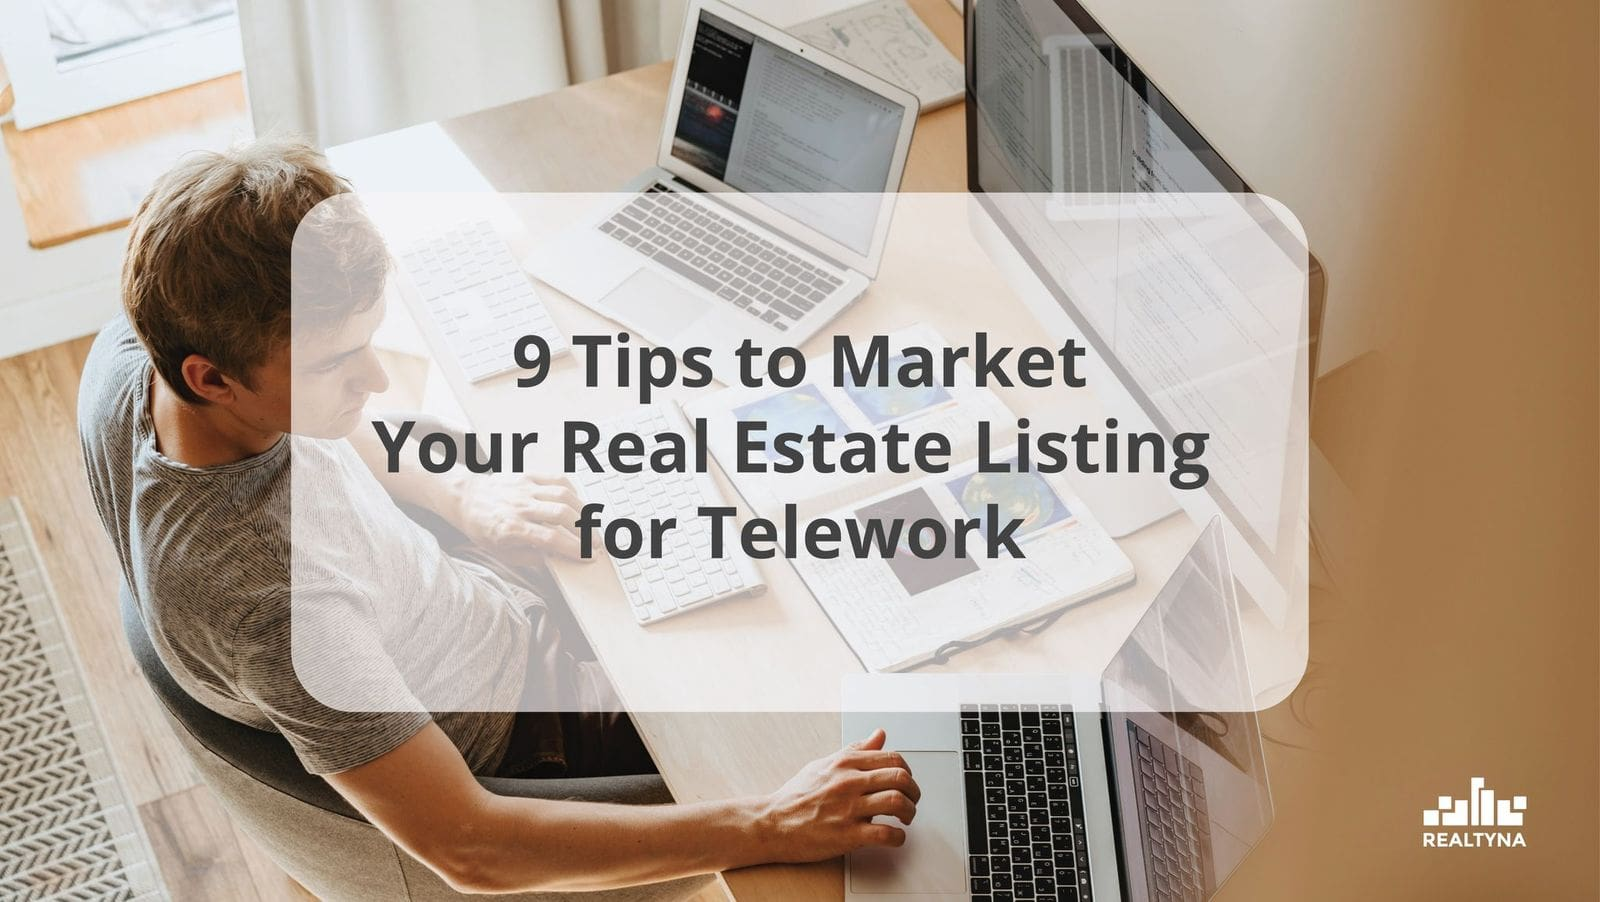 9 Tips to Market Your Real Estate Listing for Telework